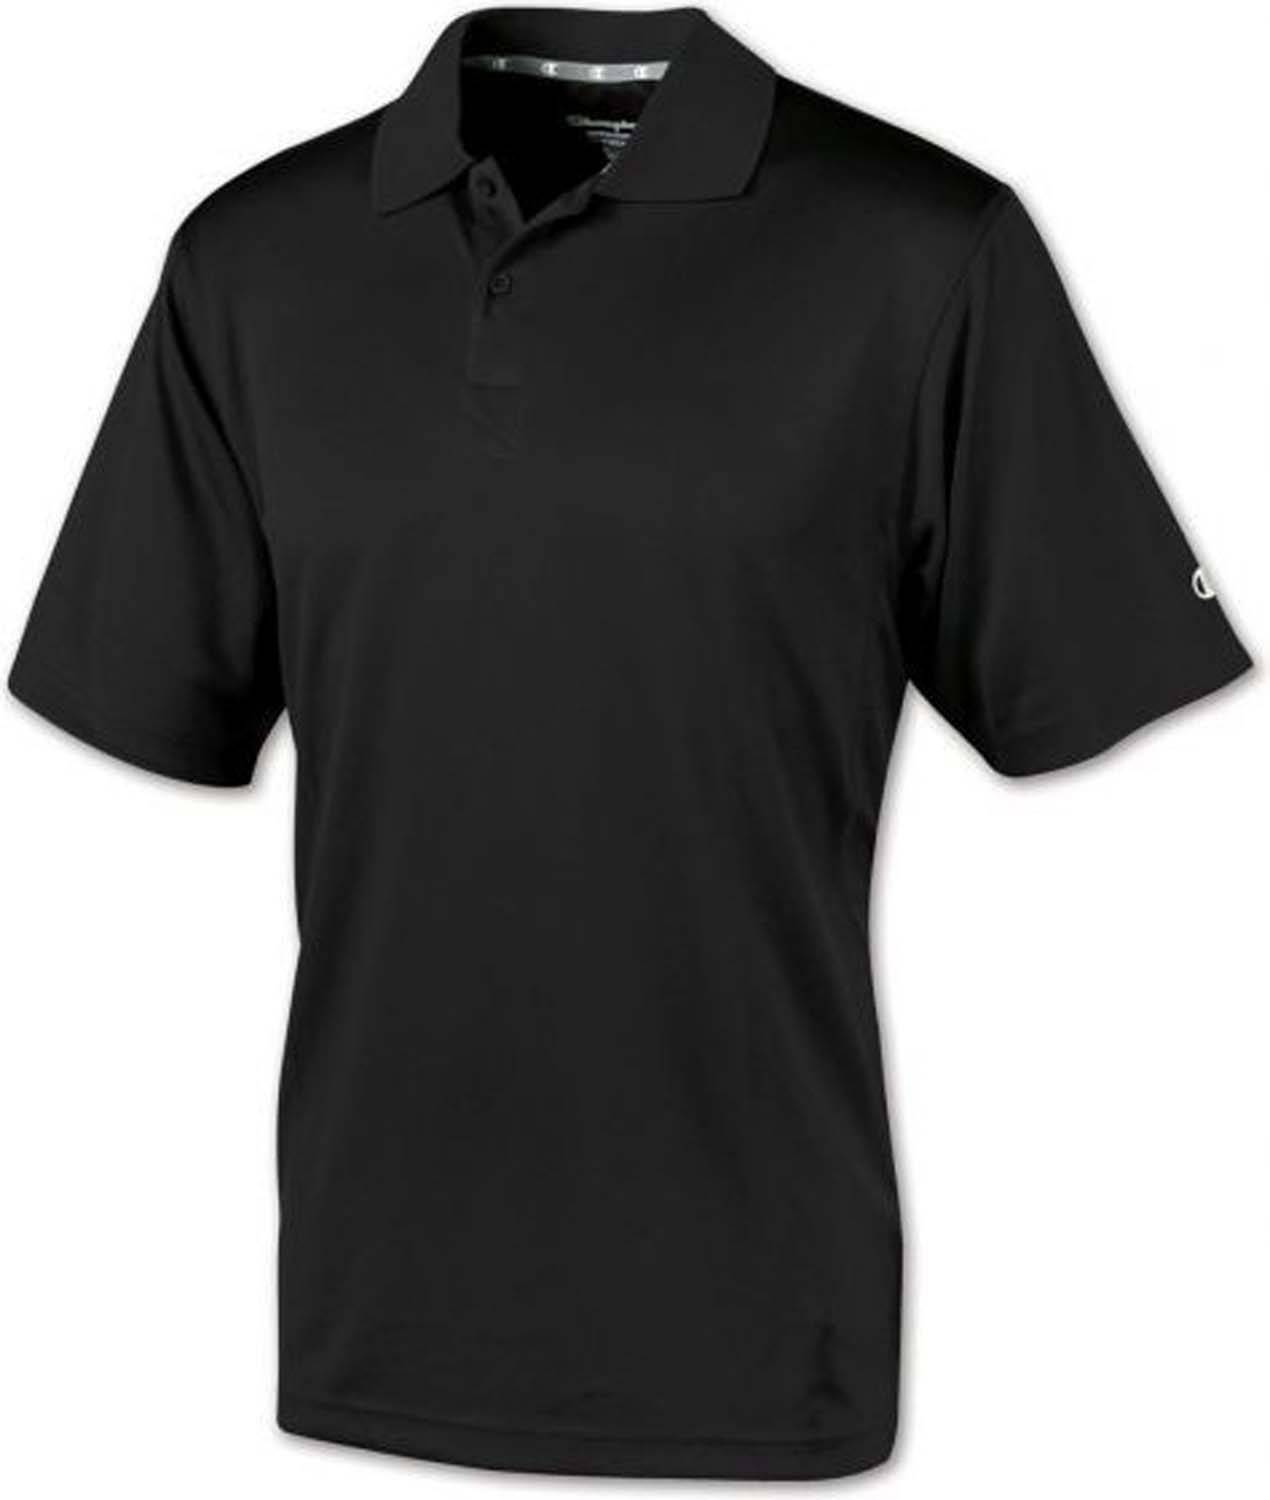 Team Sports Ultimate - 70091 - Champion Ultimate Double Dry Polo - Black-small 70091